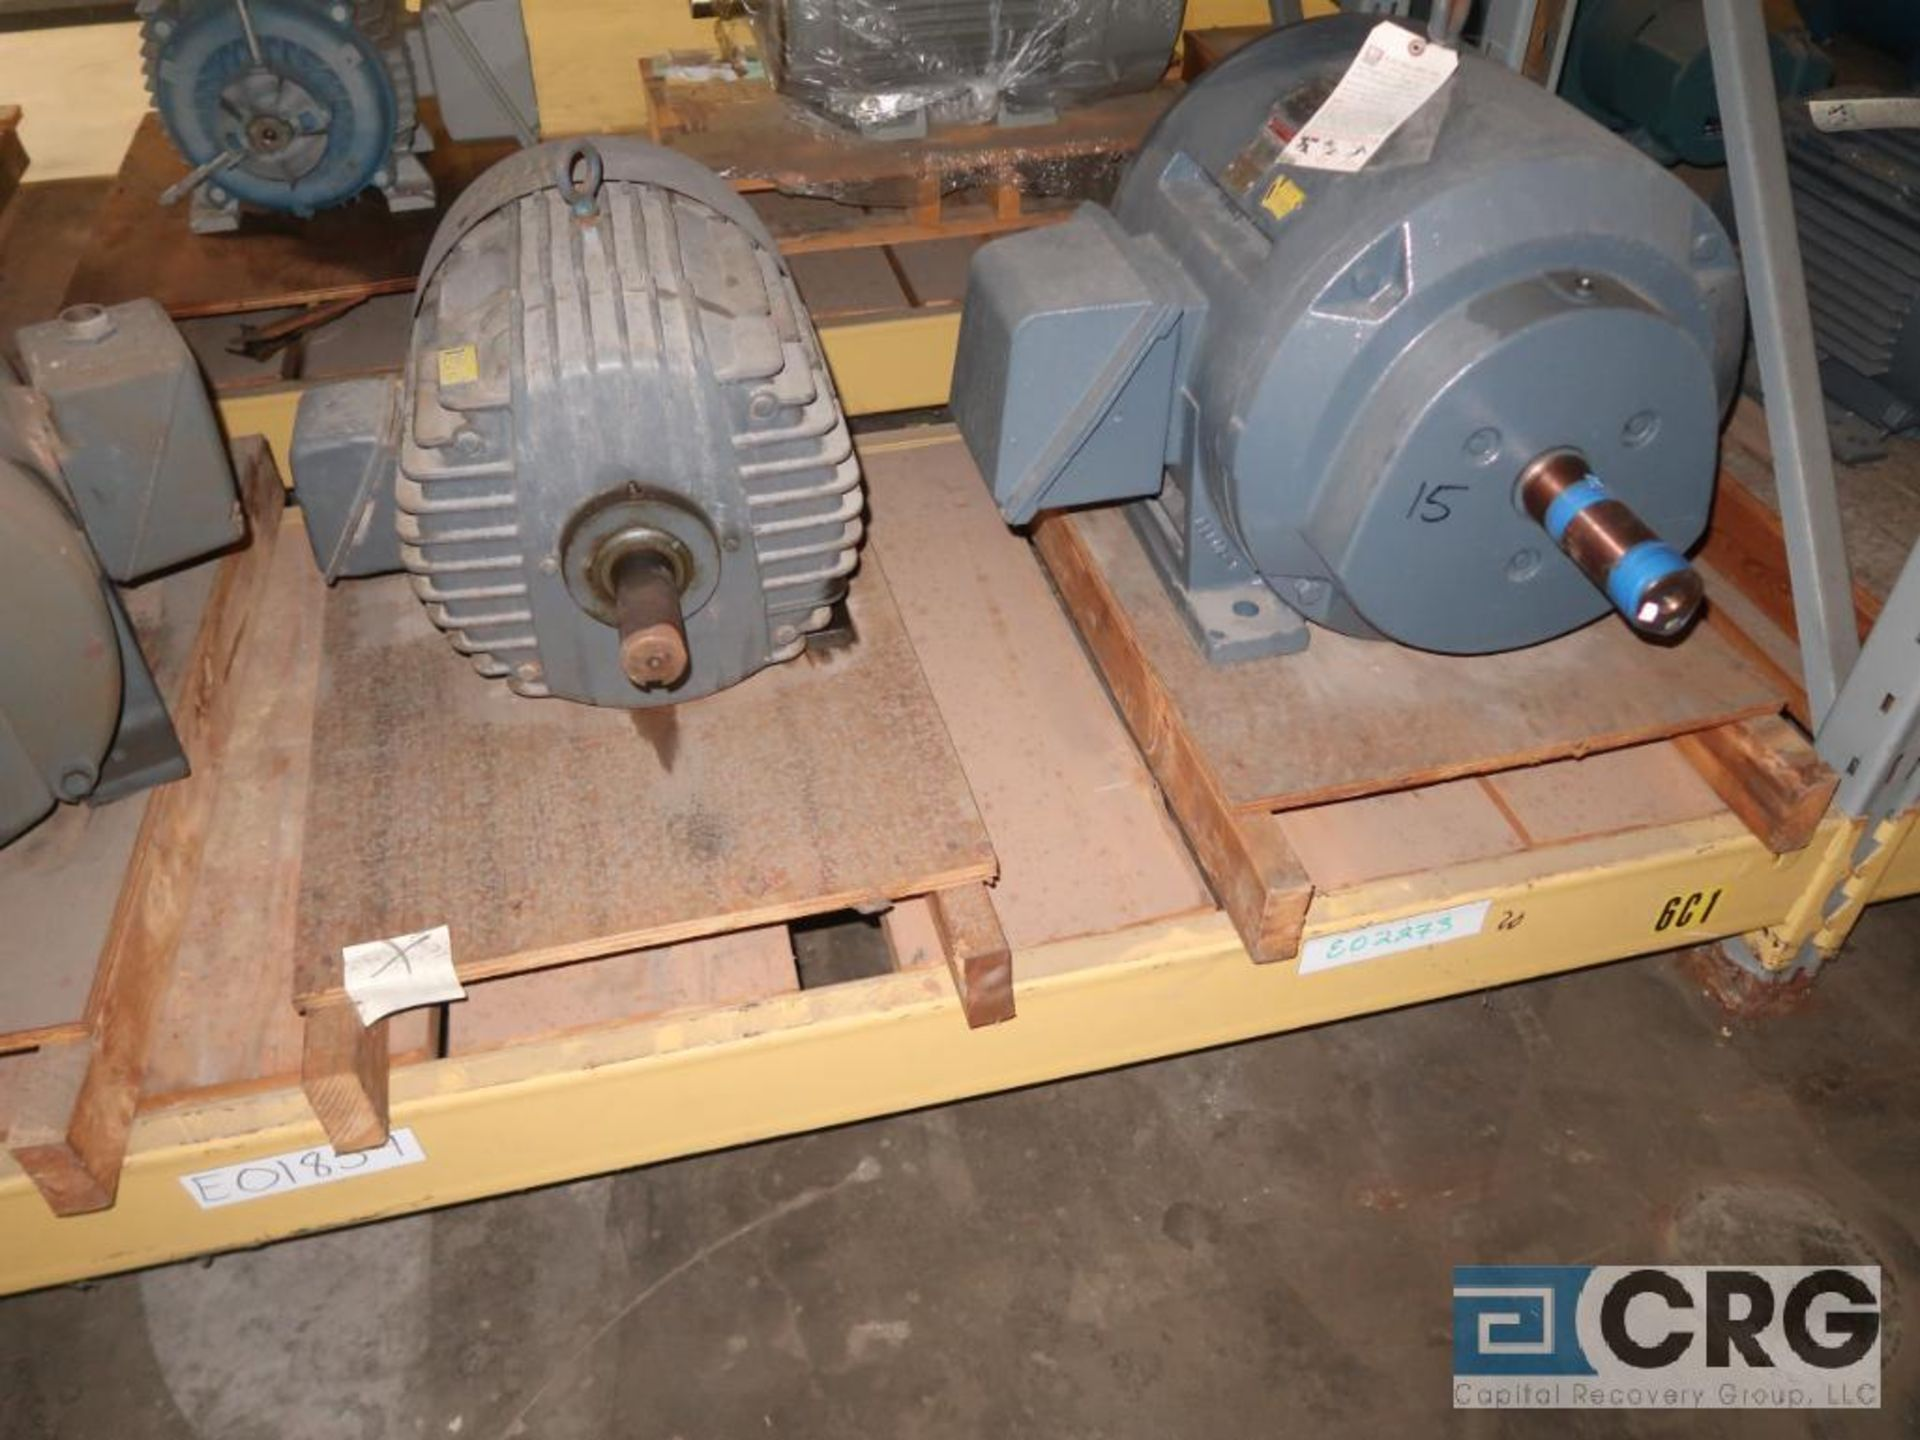 Lot of (29) assorted 15 HP, 10 HP, and 7.5 HP motors on (7) shelves, some with gear drives (Motor - Image 10 of 11